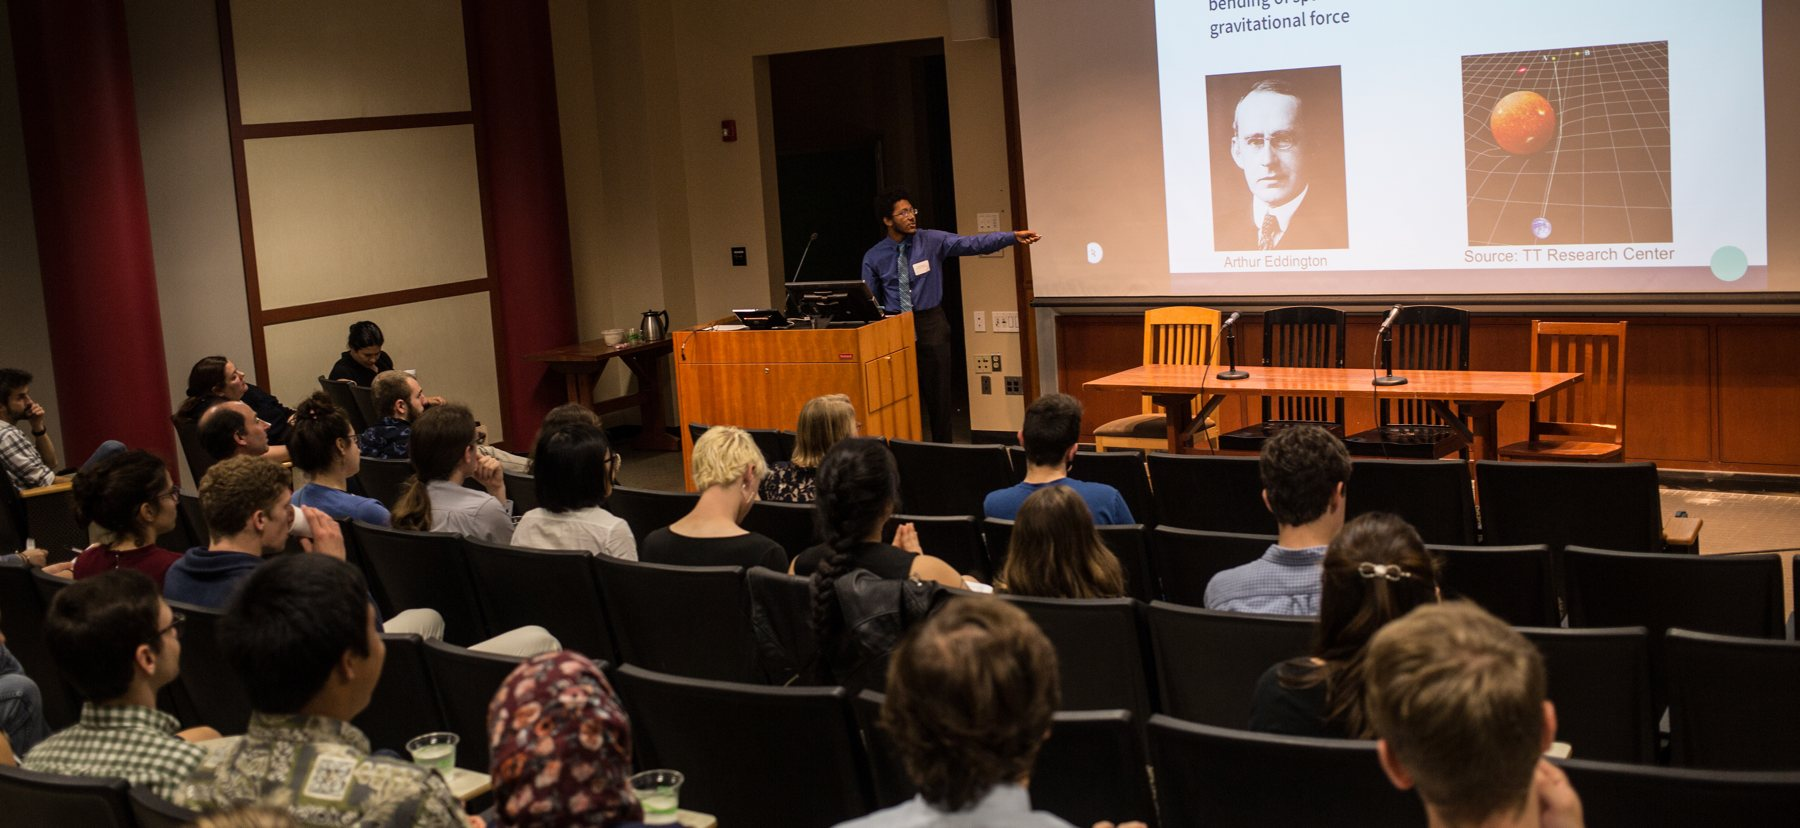 A person presents on research in front of an audience.